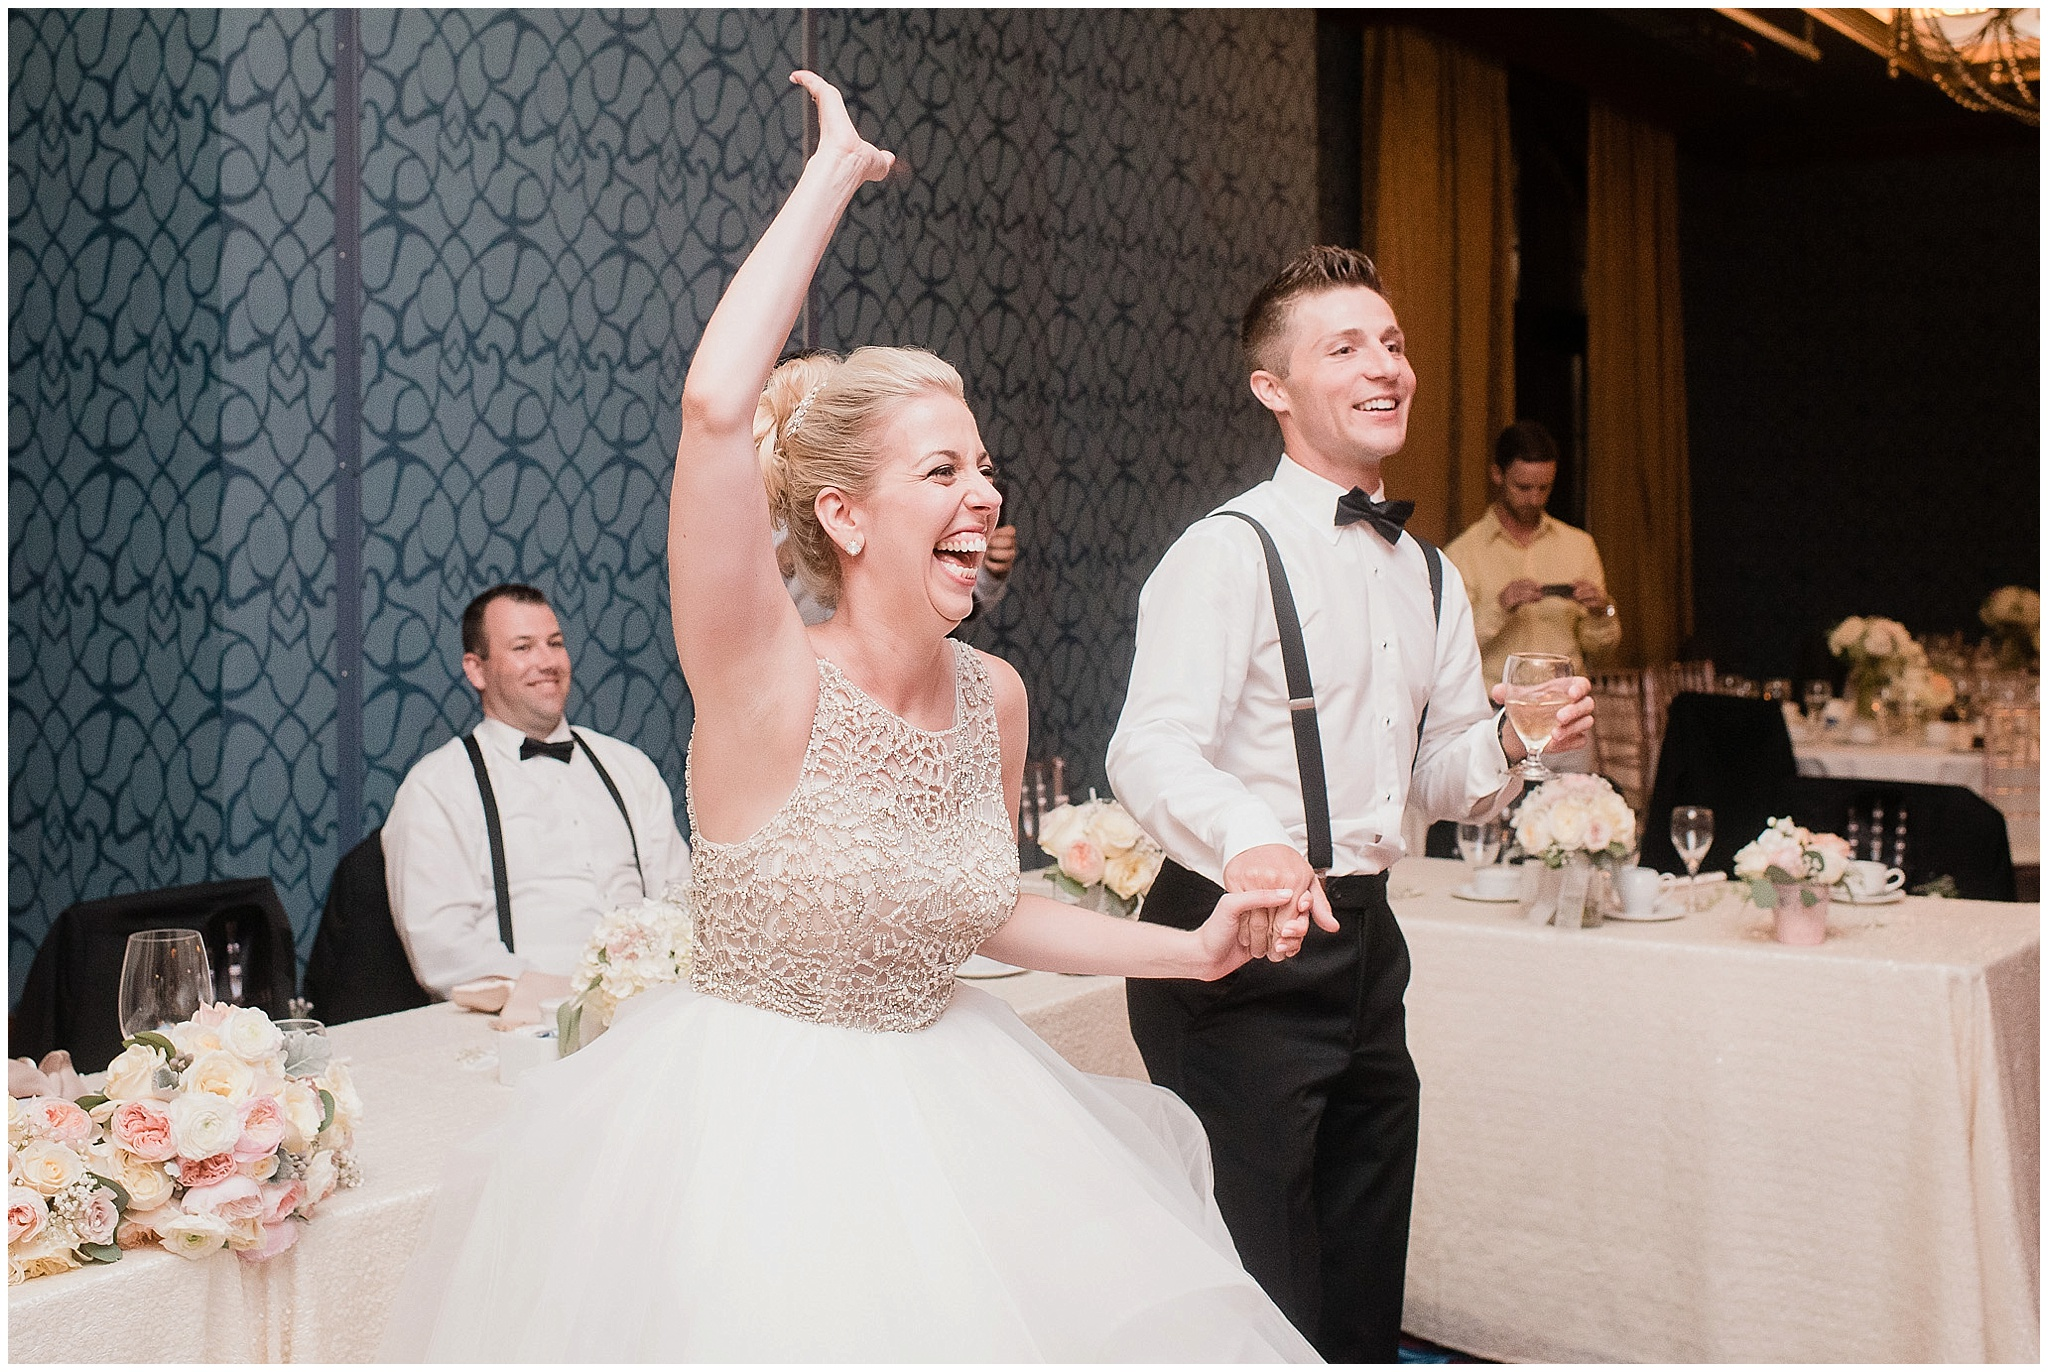 Incredible flash mob dance! Glencairn wedding photographed by Jenn Kavanagh Photography